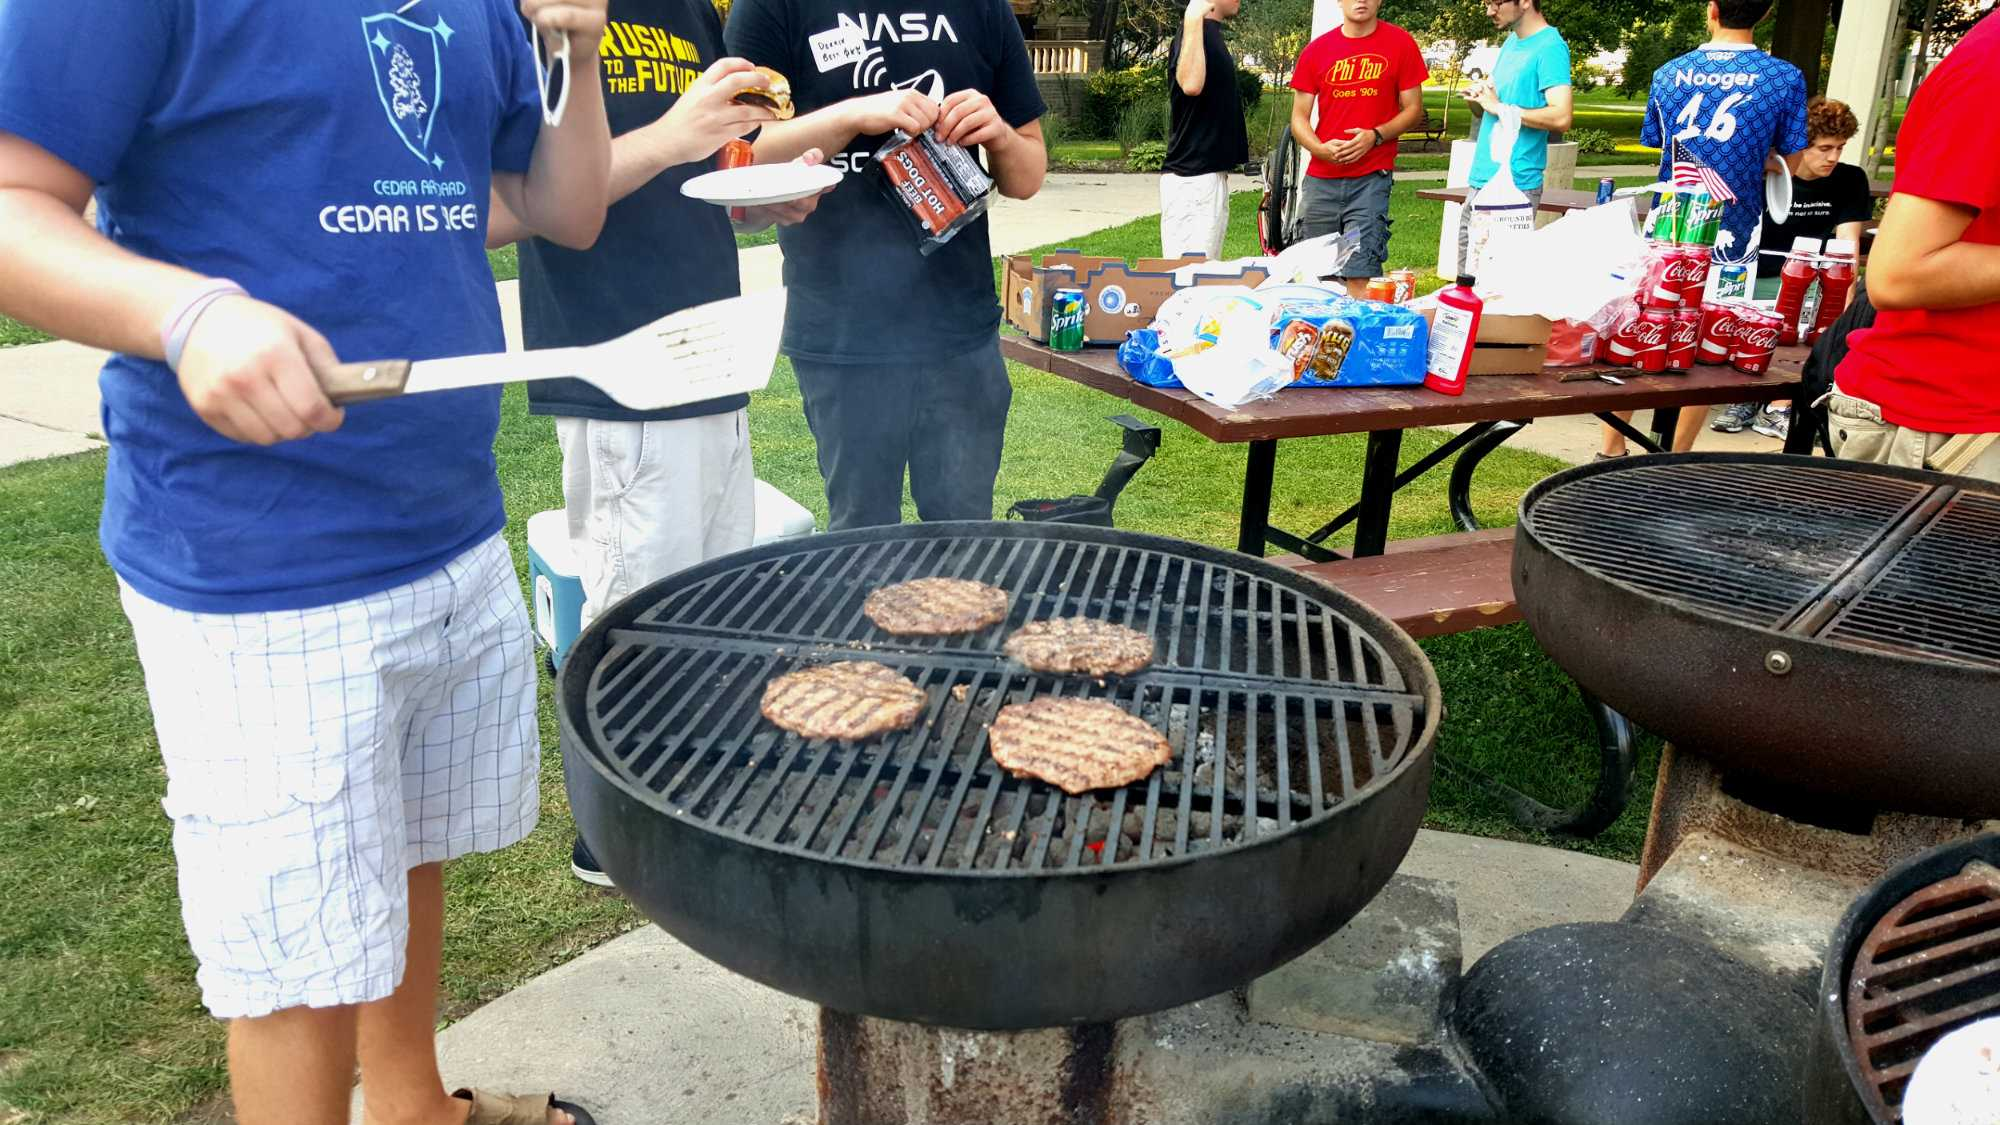 Resident Assistants are currently not allowed to make food for their residents. Next semester, all student organizations could be bound by a similar policy.